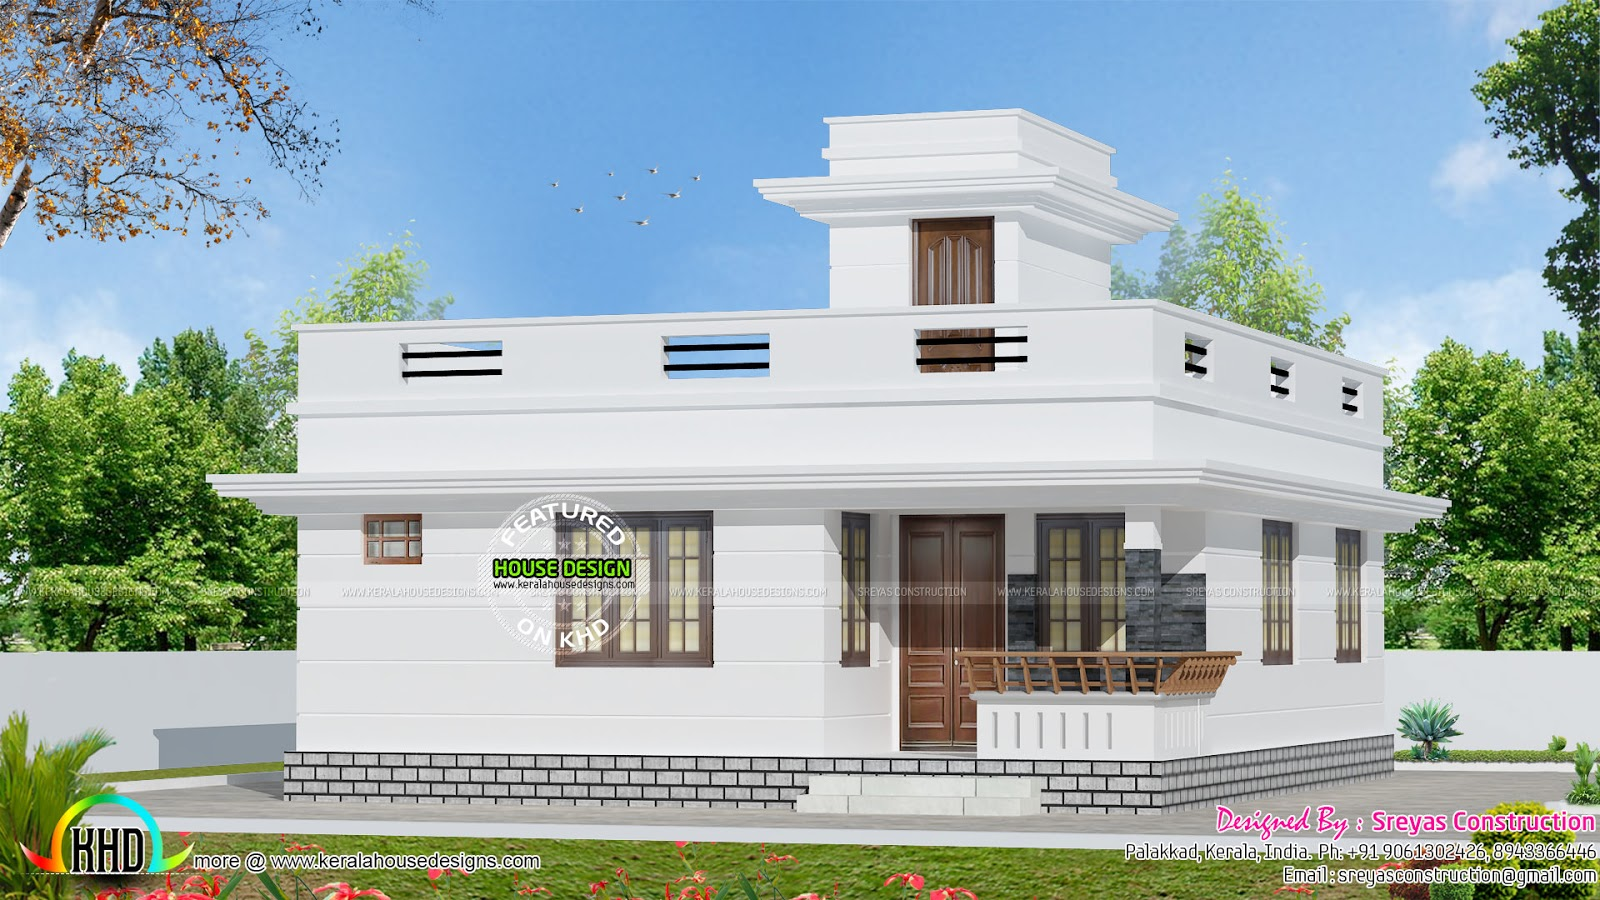 882 sq ft small house architecture kerala home design for Arch design indian home plans